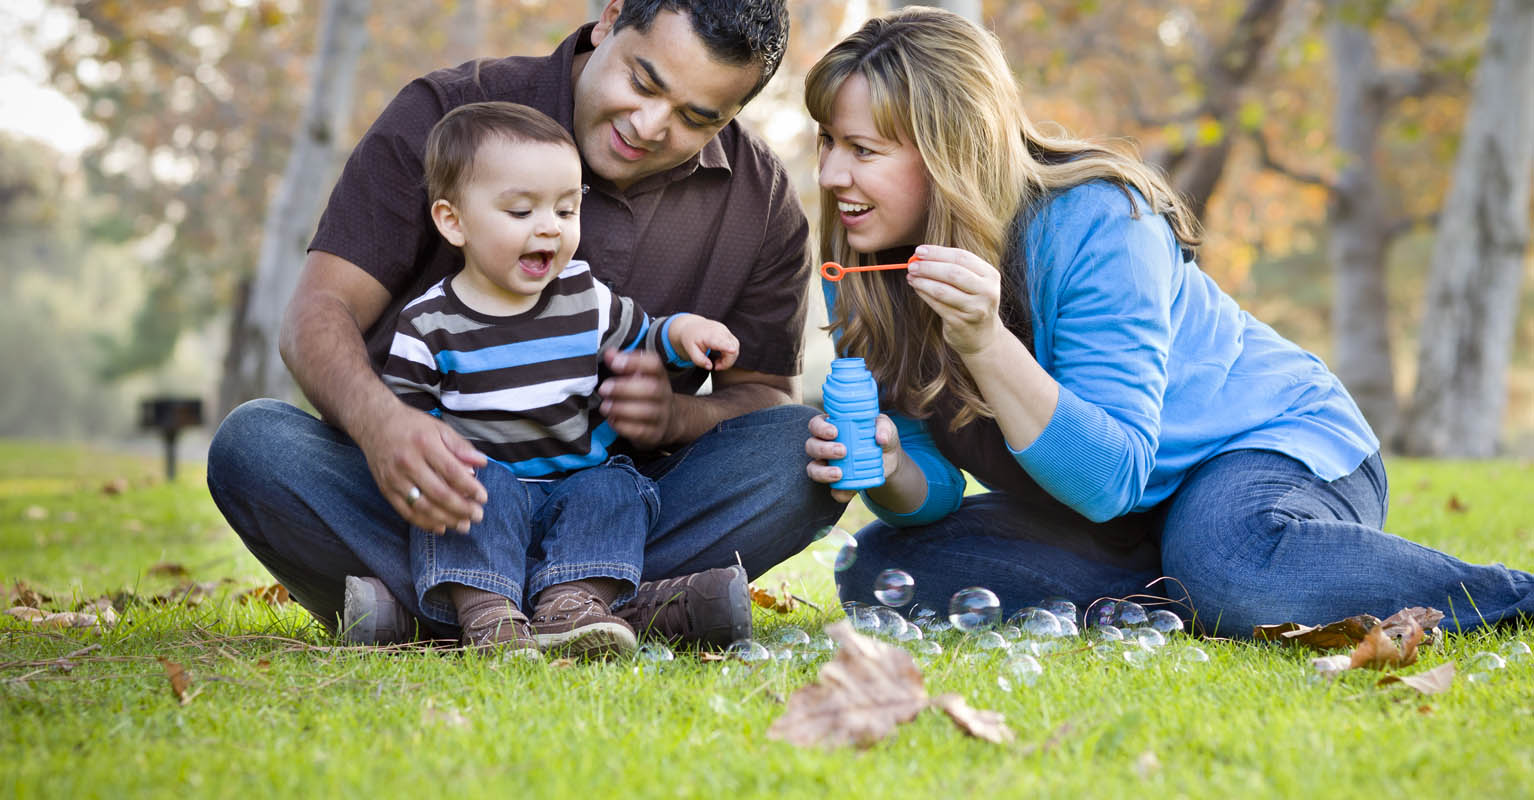 Community Auto Repair >> Life Insurance Coverage & Policies | American Family Insurance